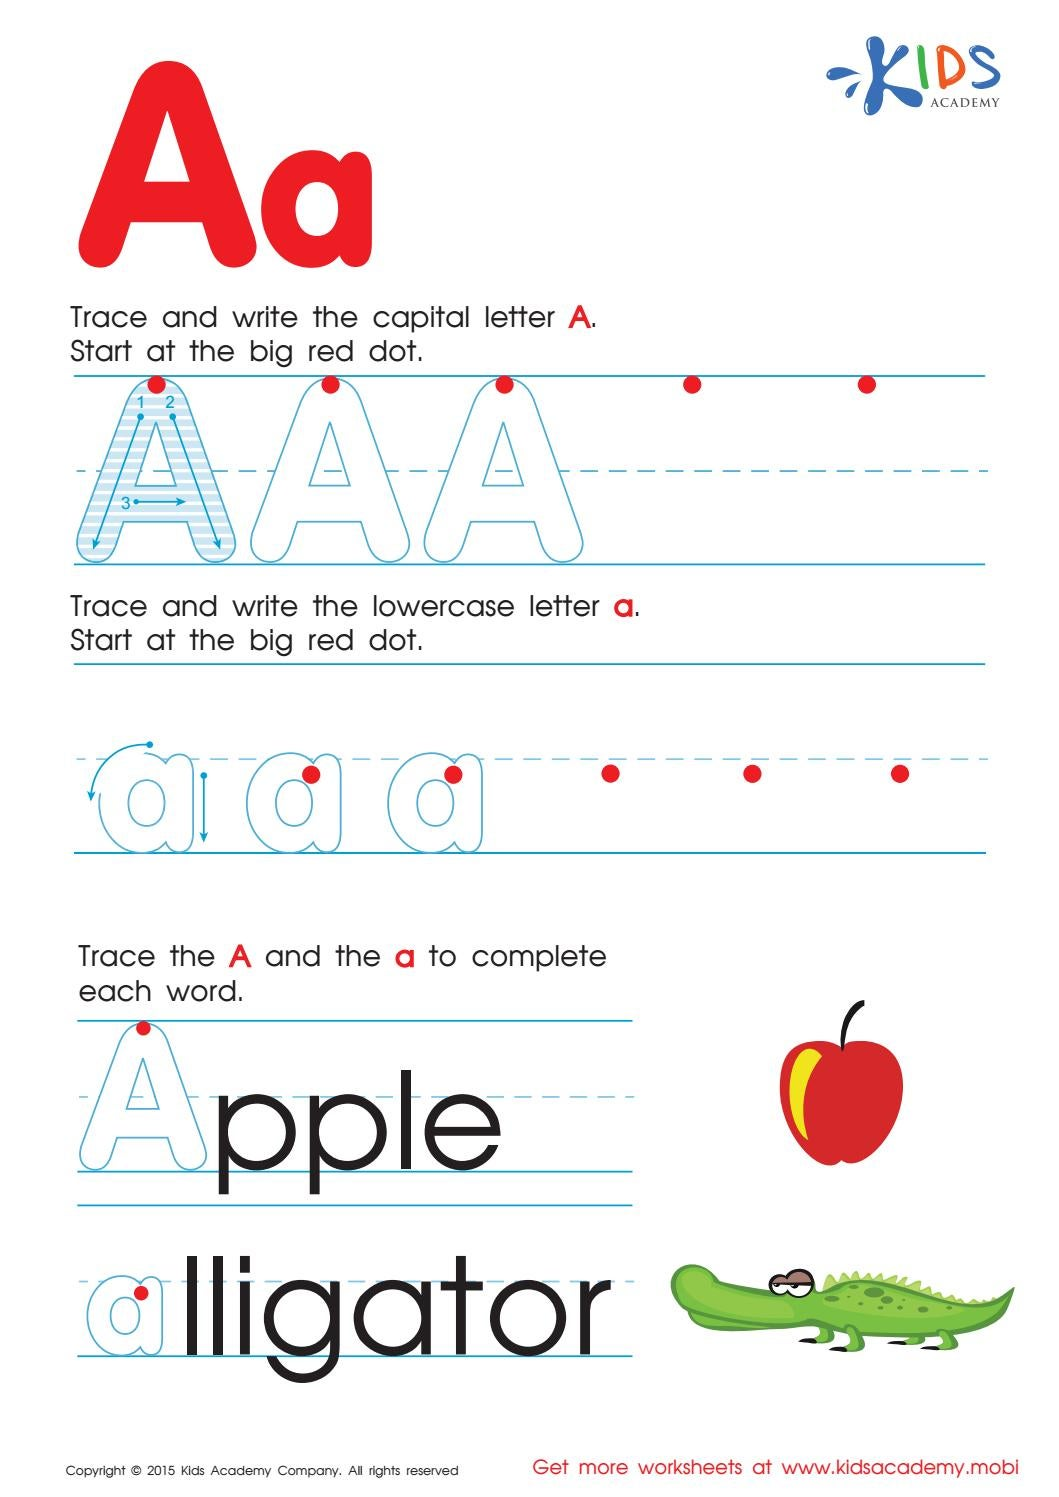 Free alphabet worksheets for kids A-Z by Kids Academy - Issuu